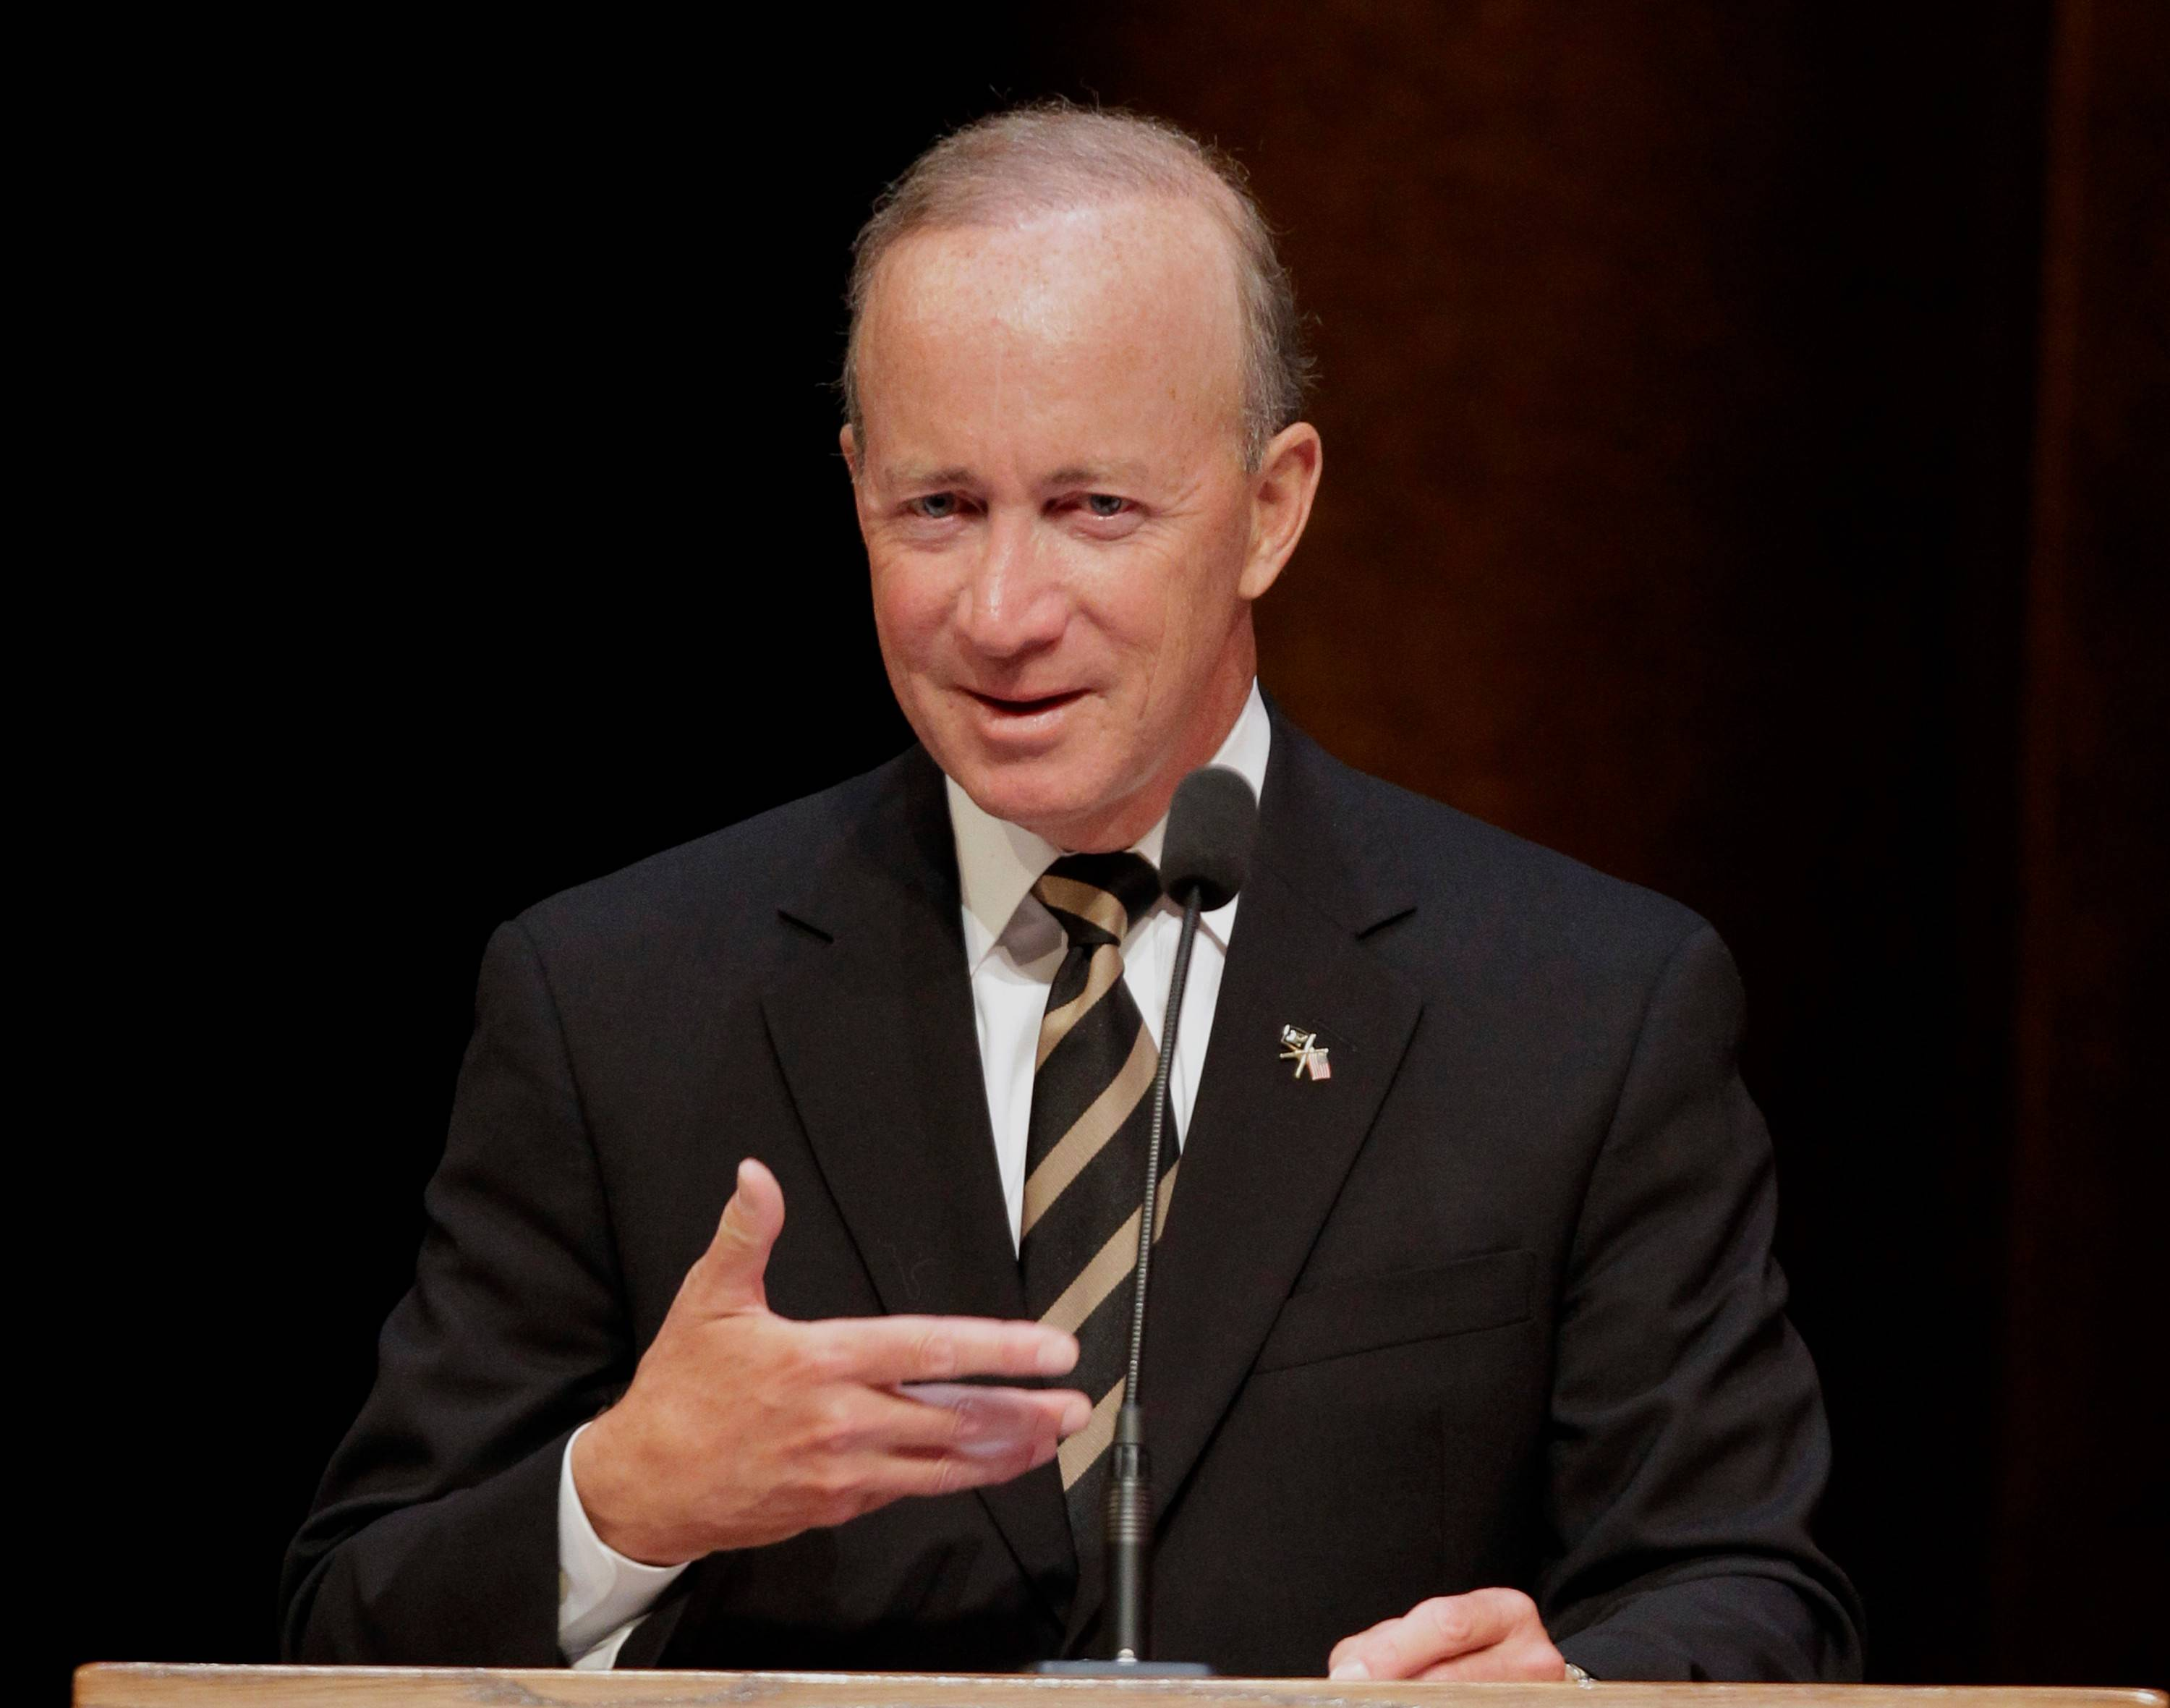 Most of the Republican candidates for Illinois governor have cited former Indiana Gov. Mitch Daniels as a role model.